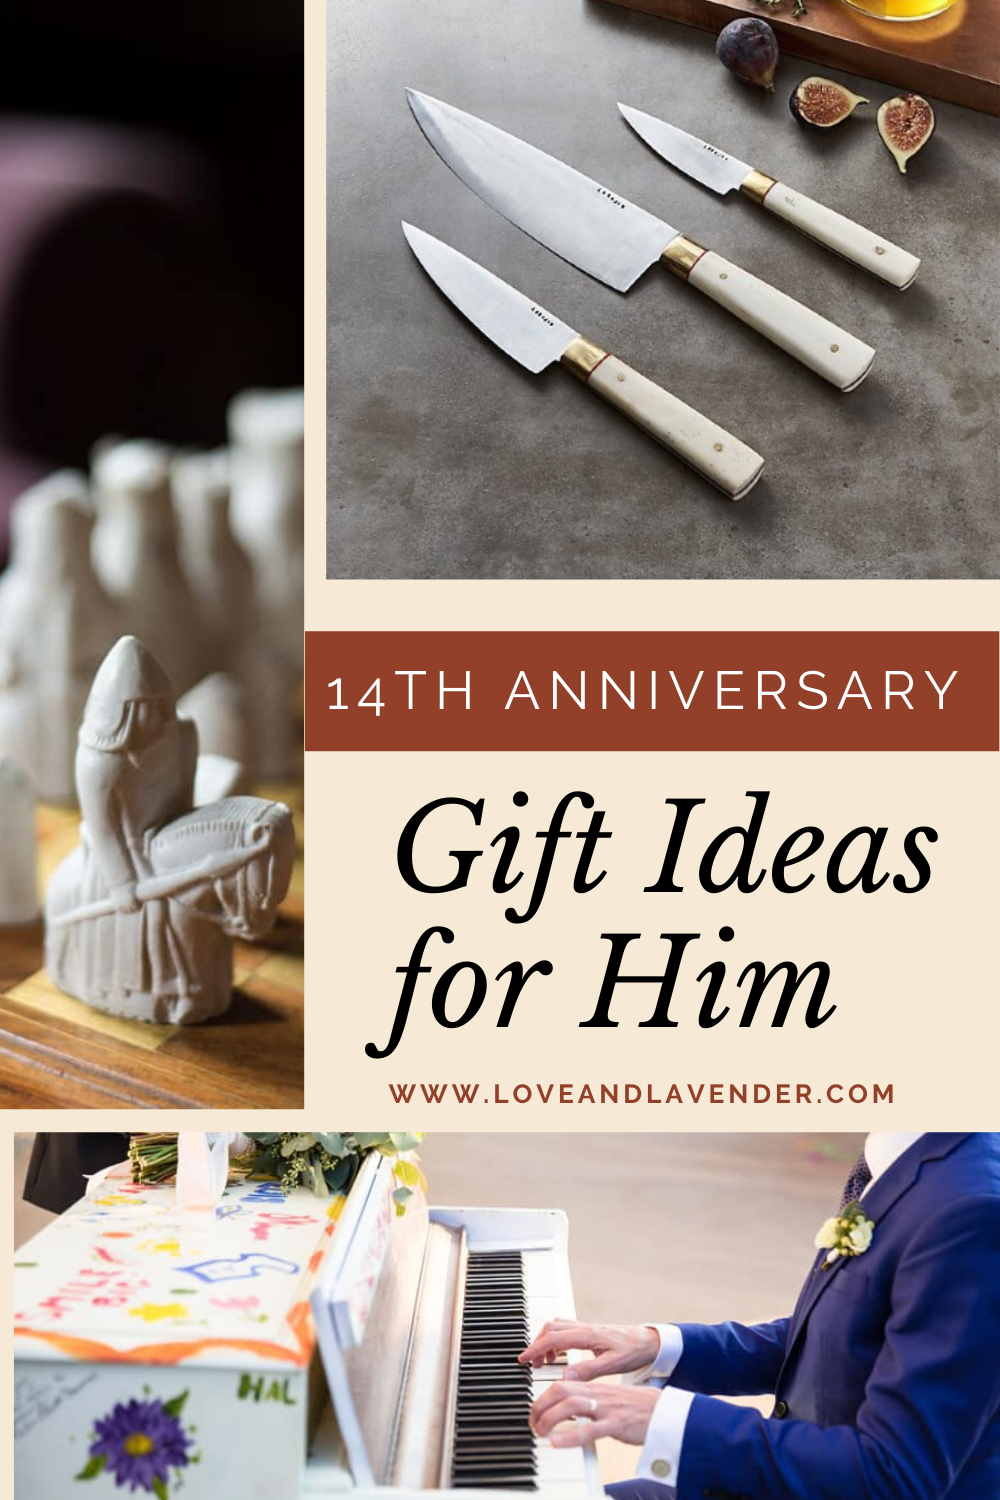 11 Incredible Ivory Gifts for Your 14th Anniversary in